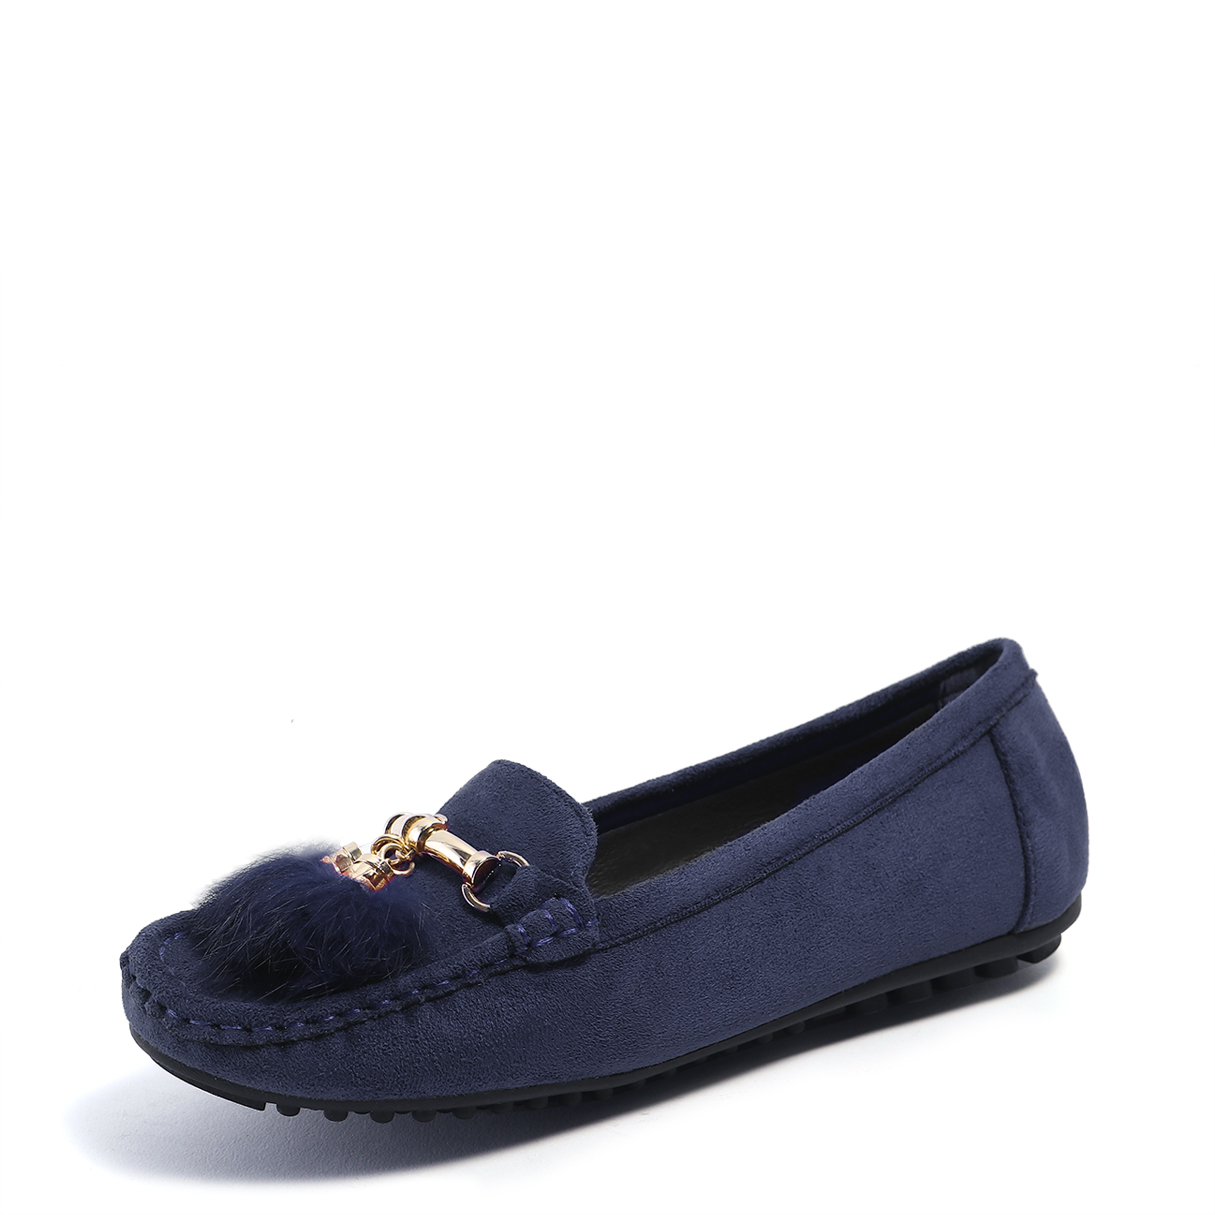 Royal Fur Decoration Slip-on Casual Flats